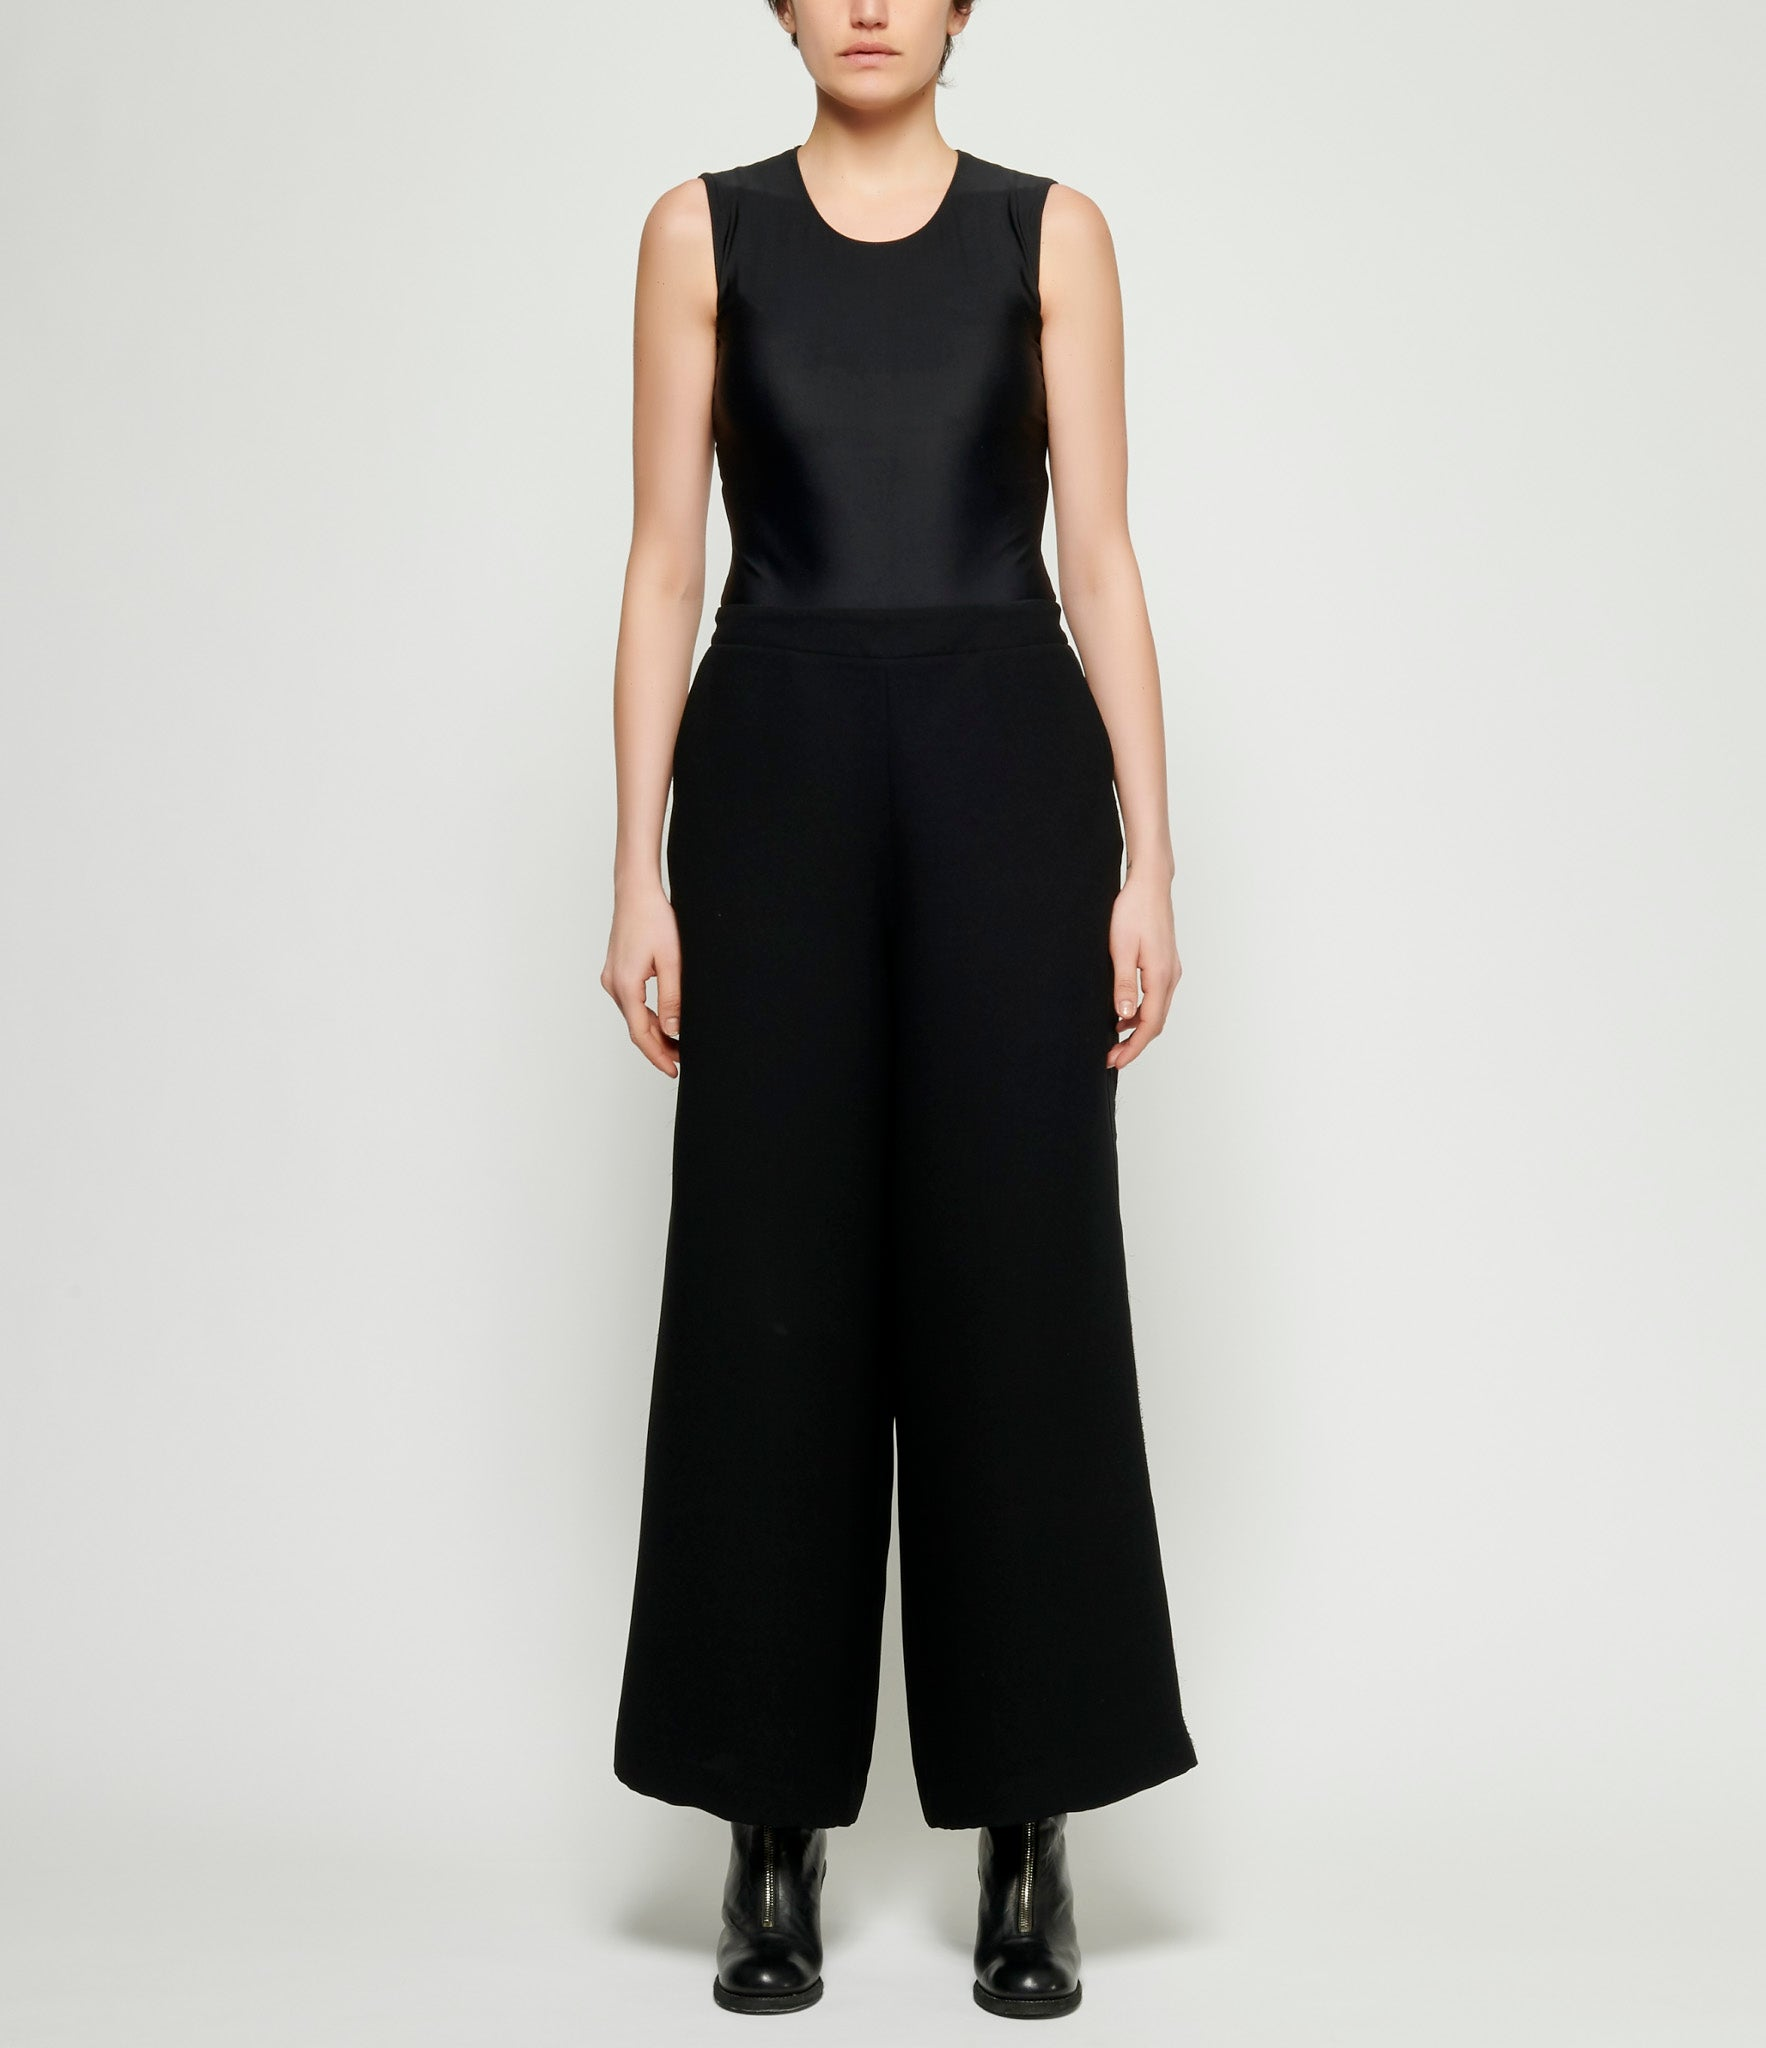 Replika Black High Waisted Pant